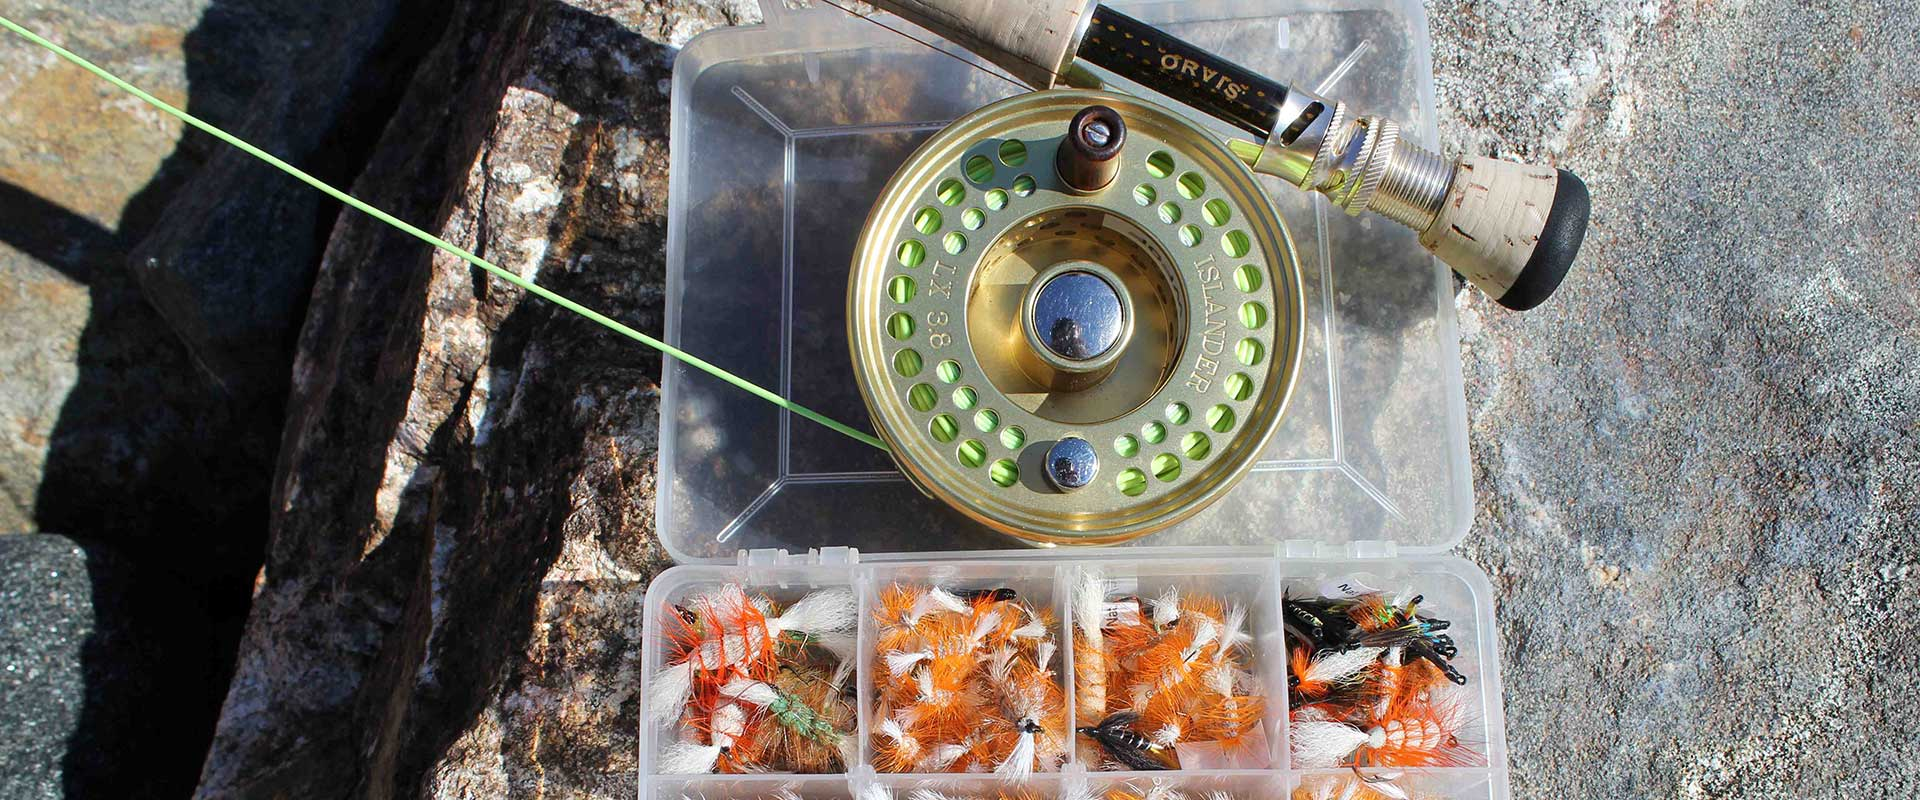 Tnff used fly fishing equipment the new fly fisher for Fly fishing materials